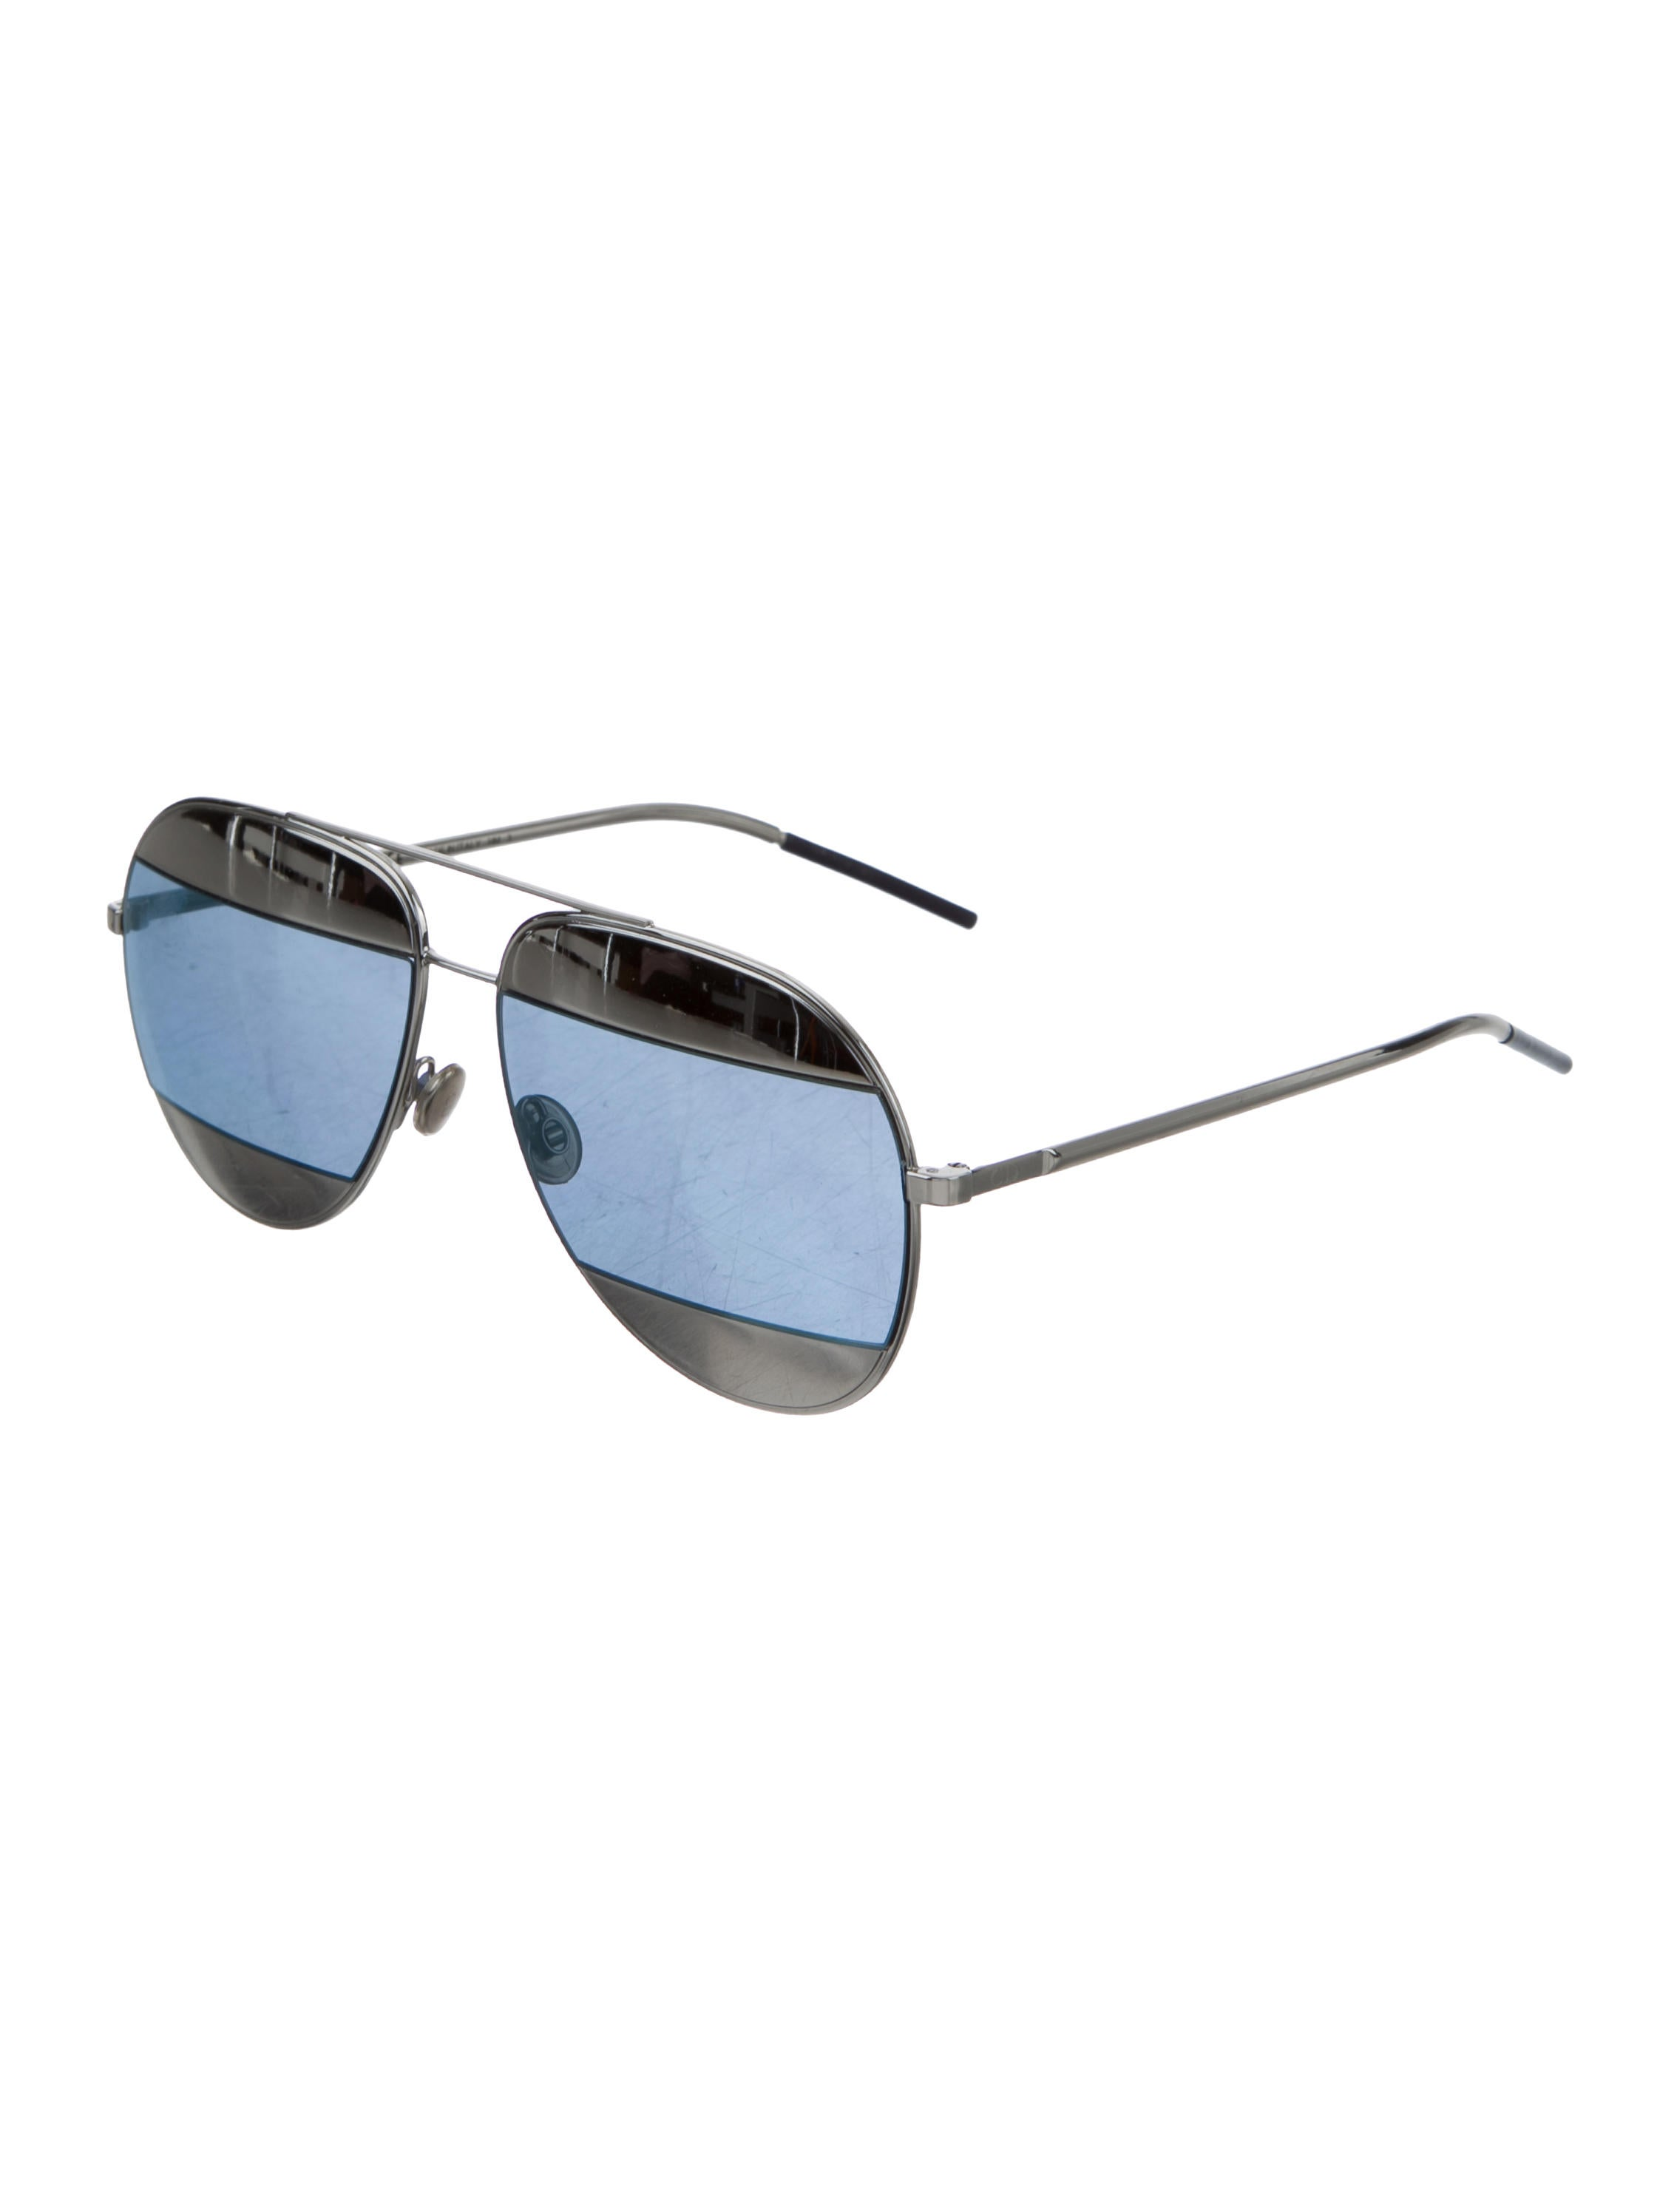 b57925b829 Christian Dior Split 1 Aviator Sunglasses - Accessories - CHR55170